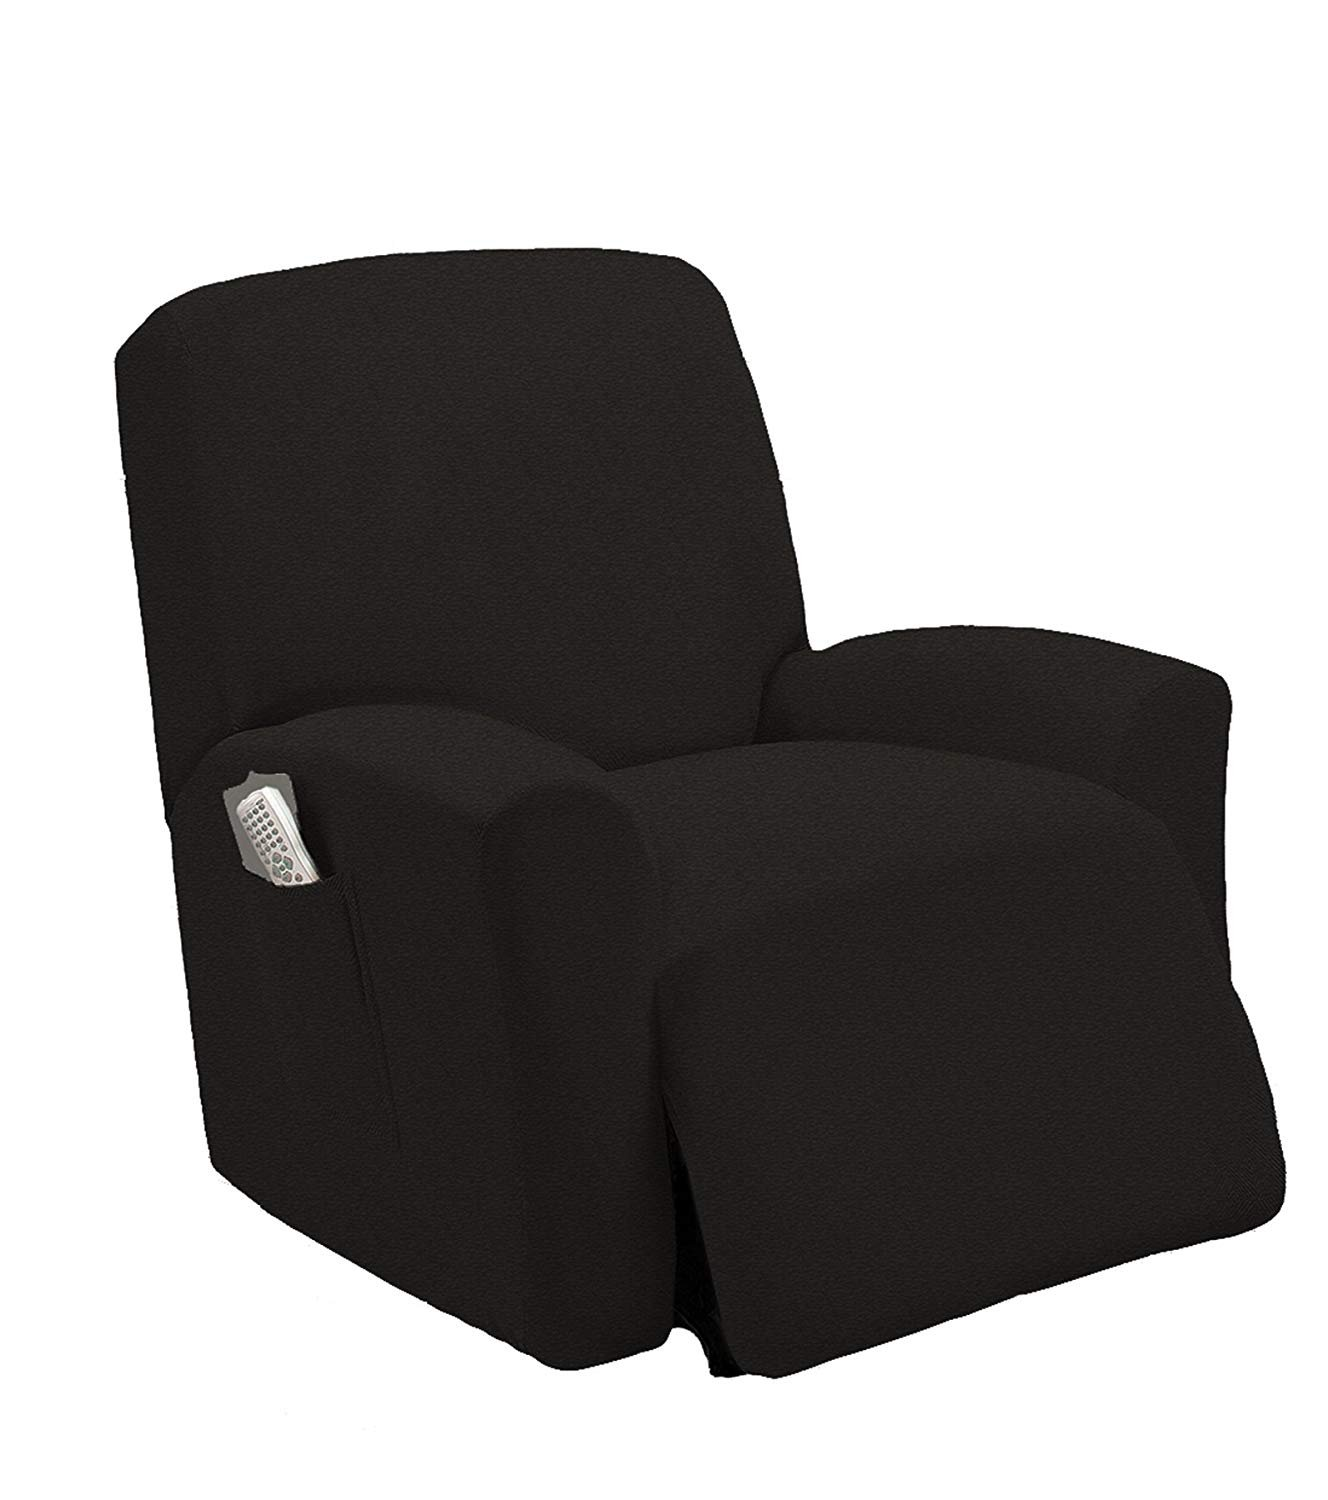 Stretch To Fit One Piece Lazy Boy Chair Recliner Slipcover, Stretch Fit Furniture Chair Recliner Cover With 3 Foam Pieces to Hid Extra Fabric, 4 ELASTIC STRAPS for Cover Stability (Black)